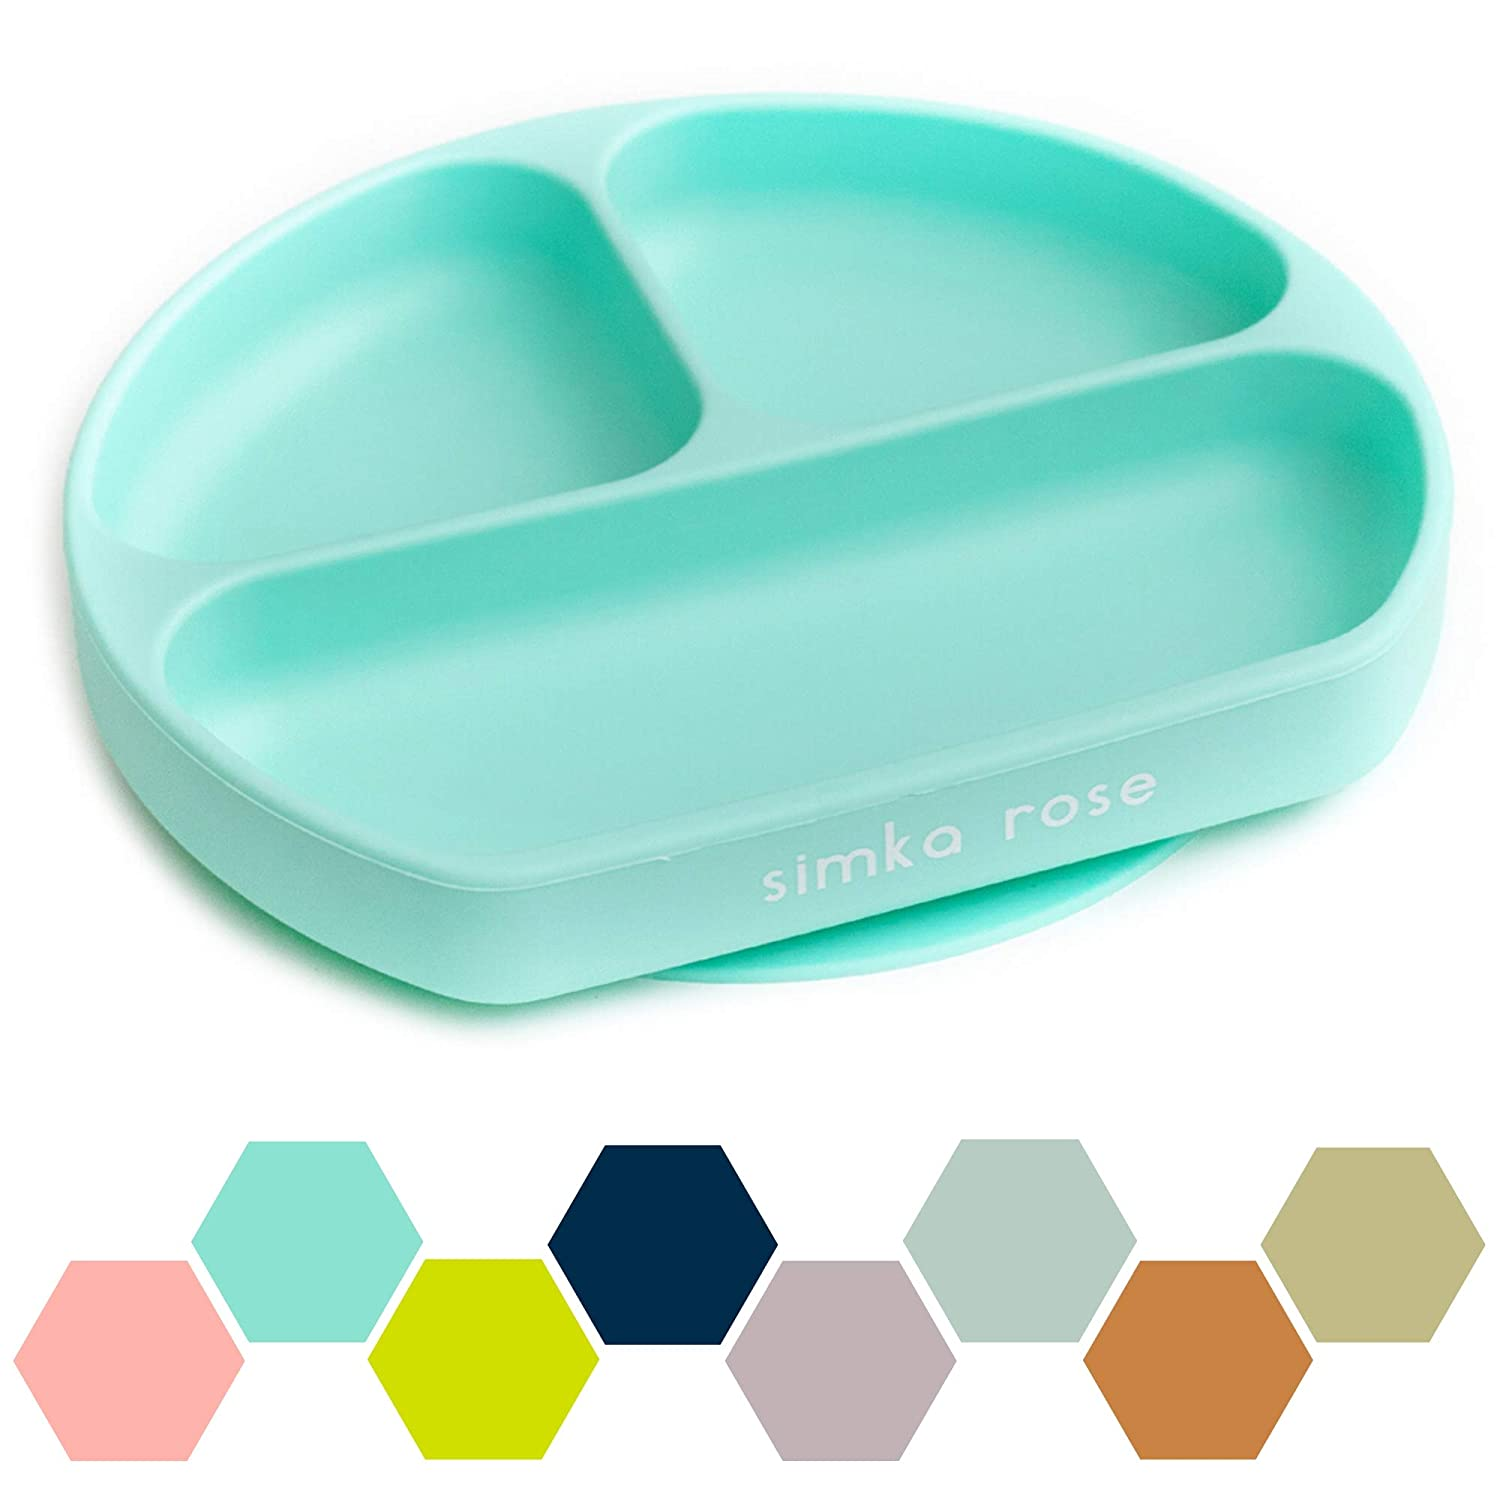 Simka Rose Suction Plate for Baby and Toddler - Divided Silicone Plate - BPA Free - Dishwasher and Microwave Safe - Cute Baby Shower Gift (Mint)